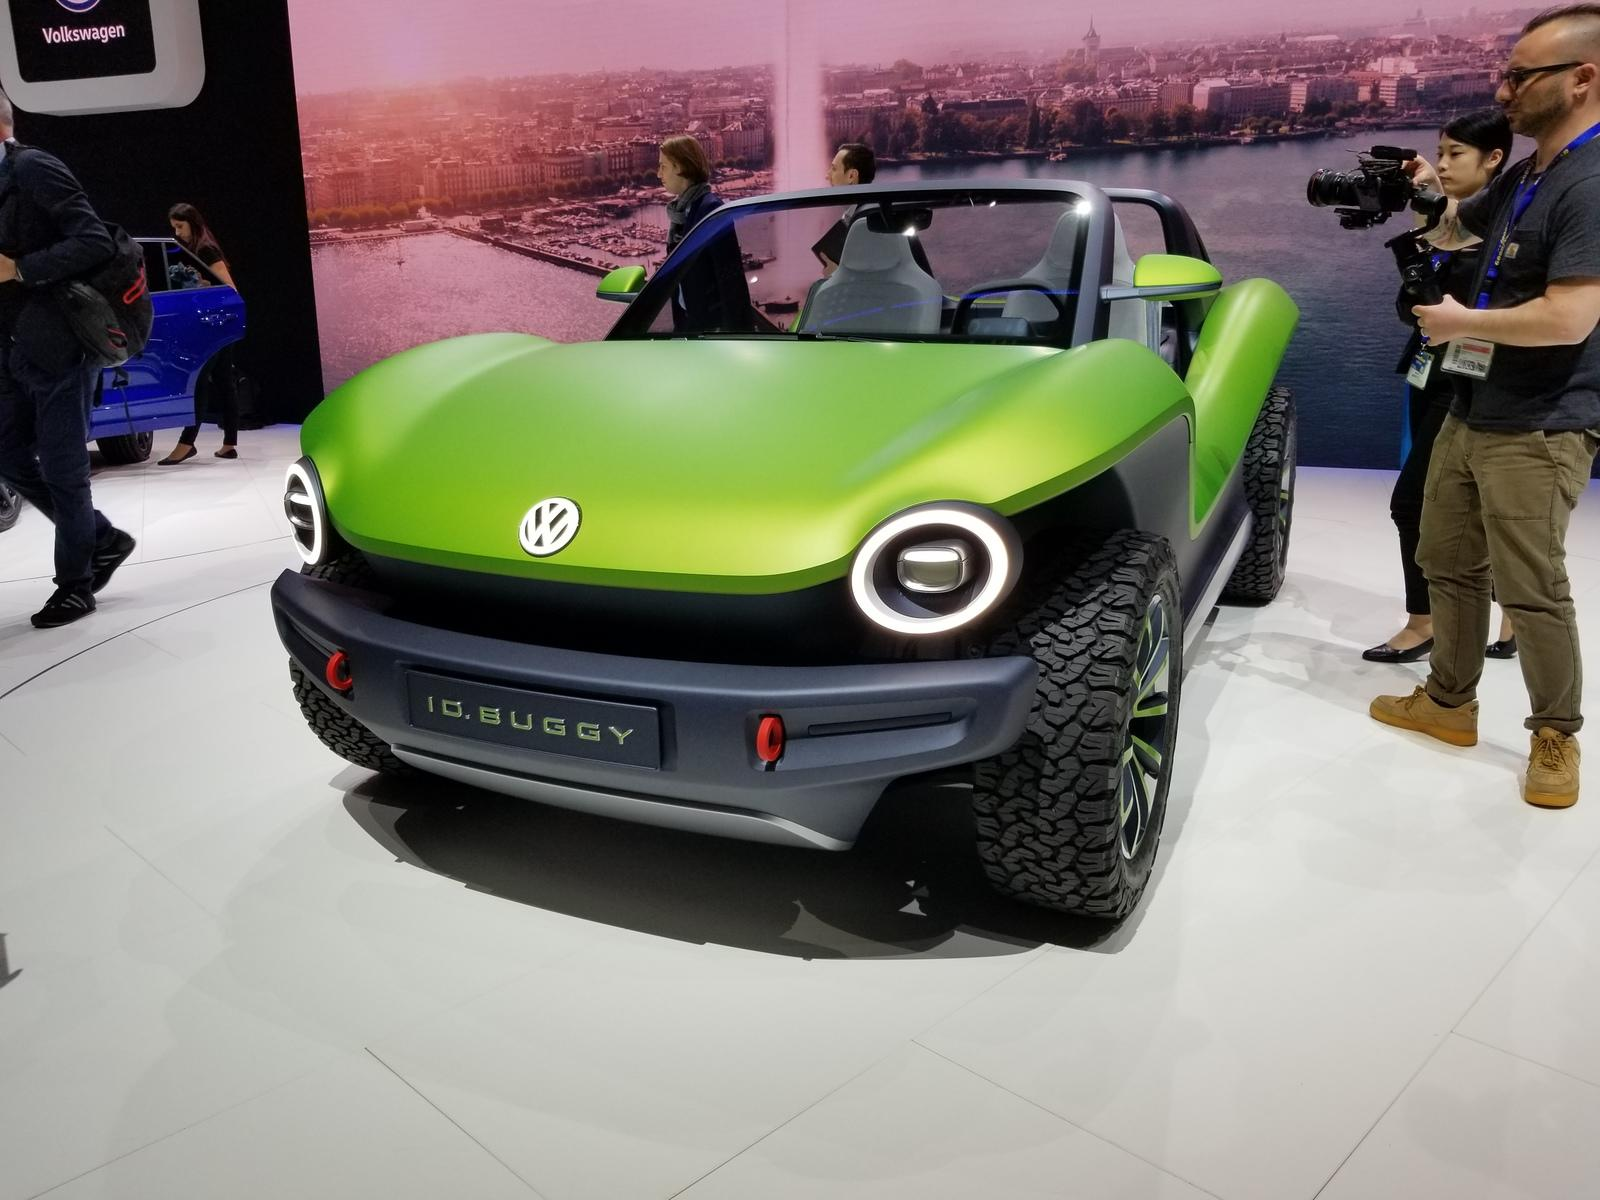 2019 VW ID Buggy Concept Wants To Take Electric Cars To